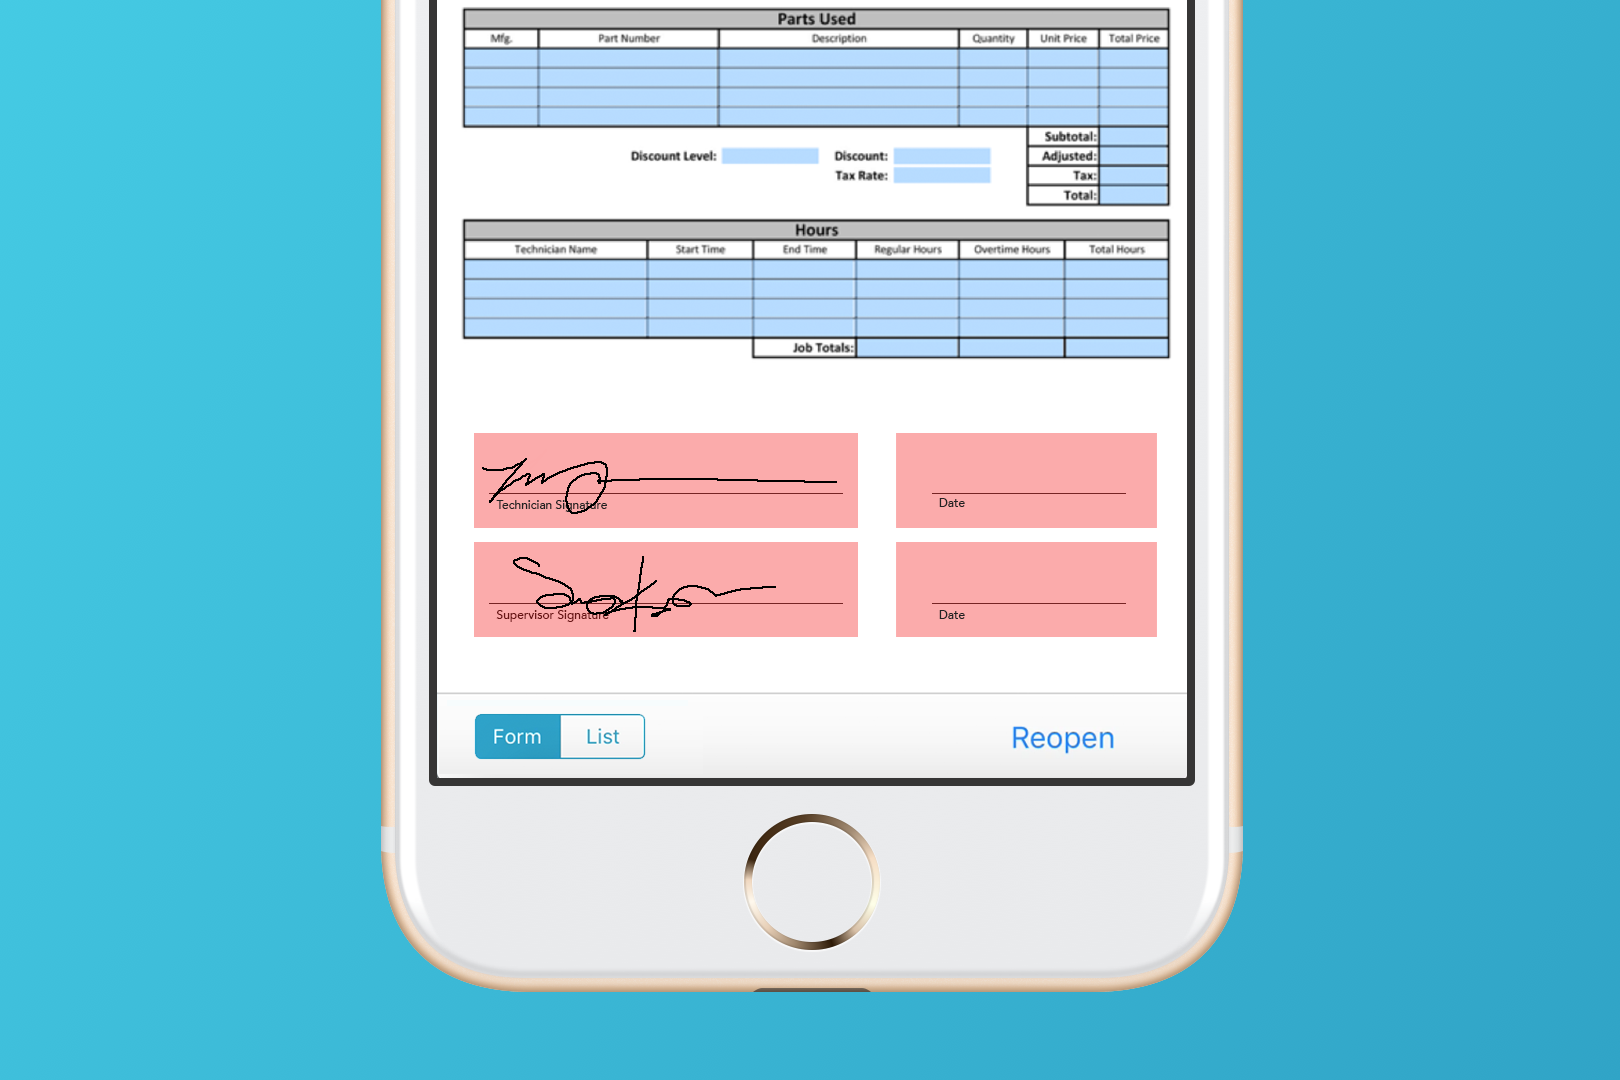 Add a signature box to your mobile forms.